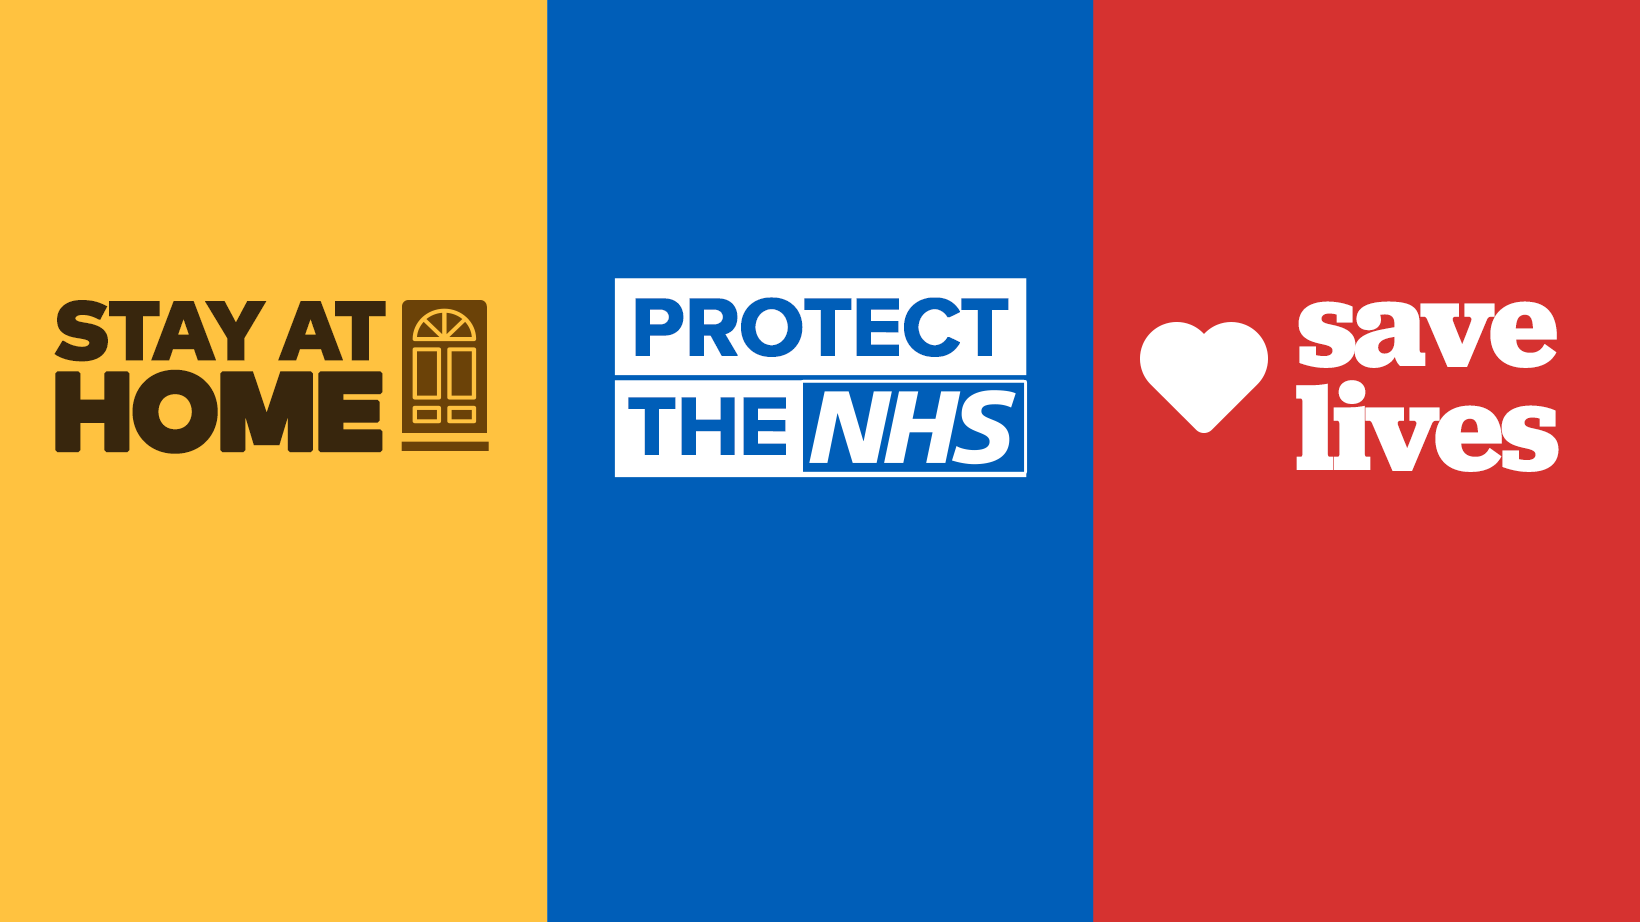 Stay at Home, Protect the NHS, Save Lives!